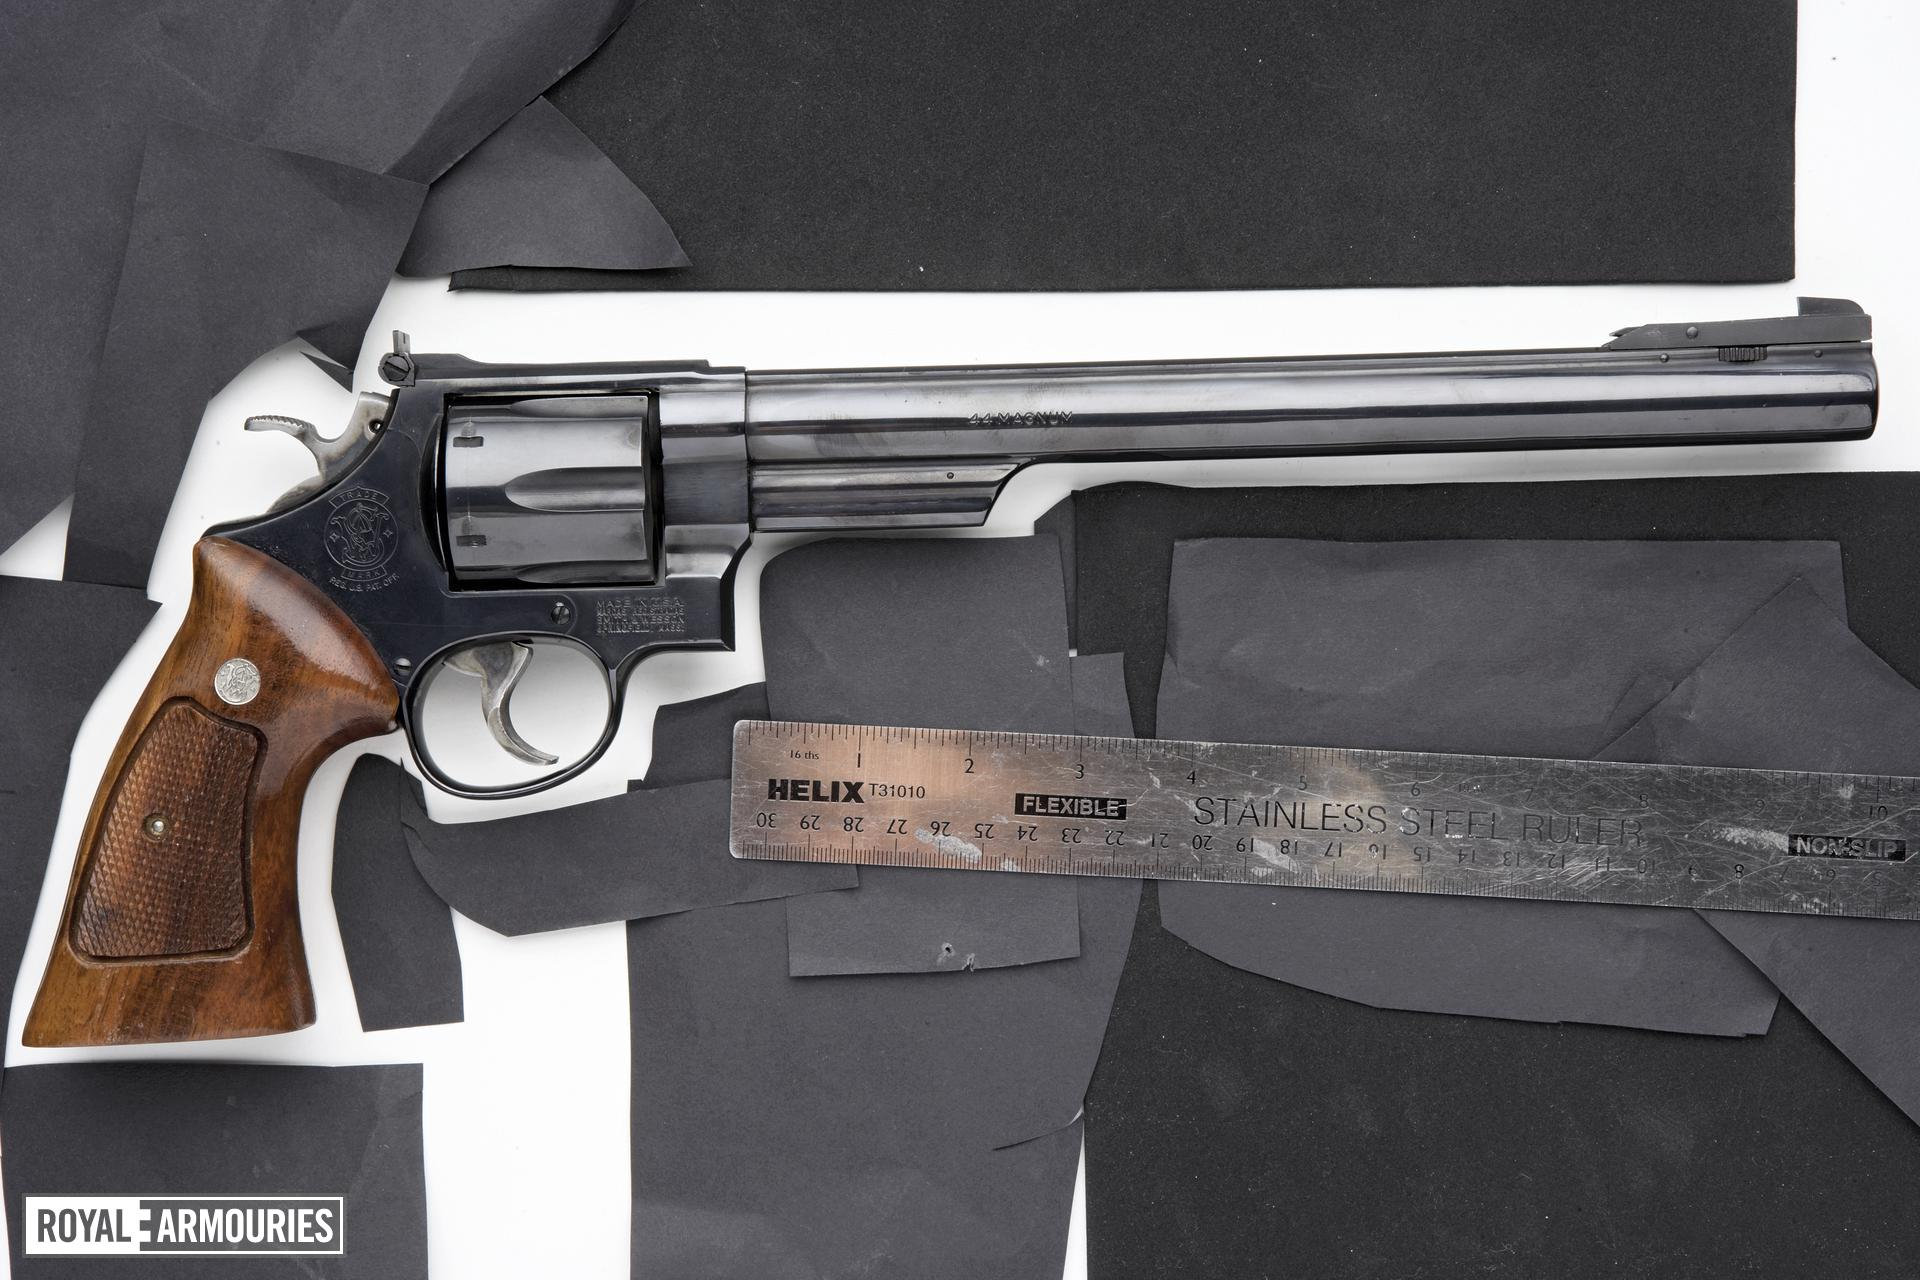 Centrefire six-shot revolver - Smith and Wesson Model 29-3